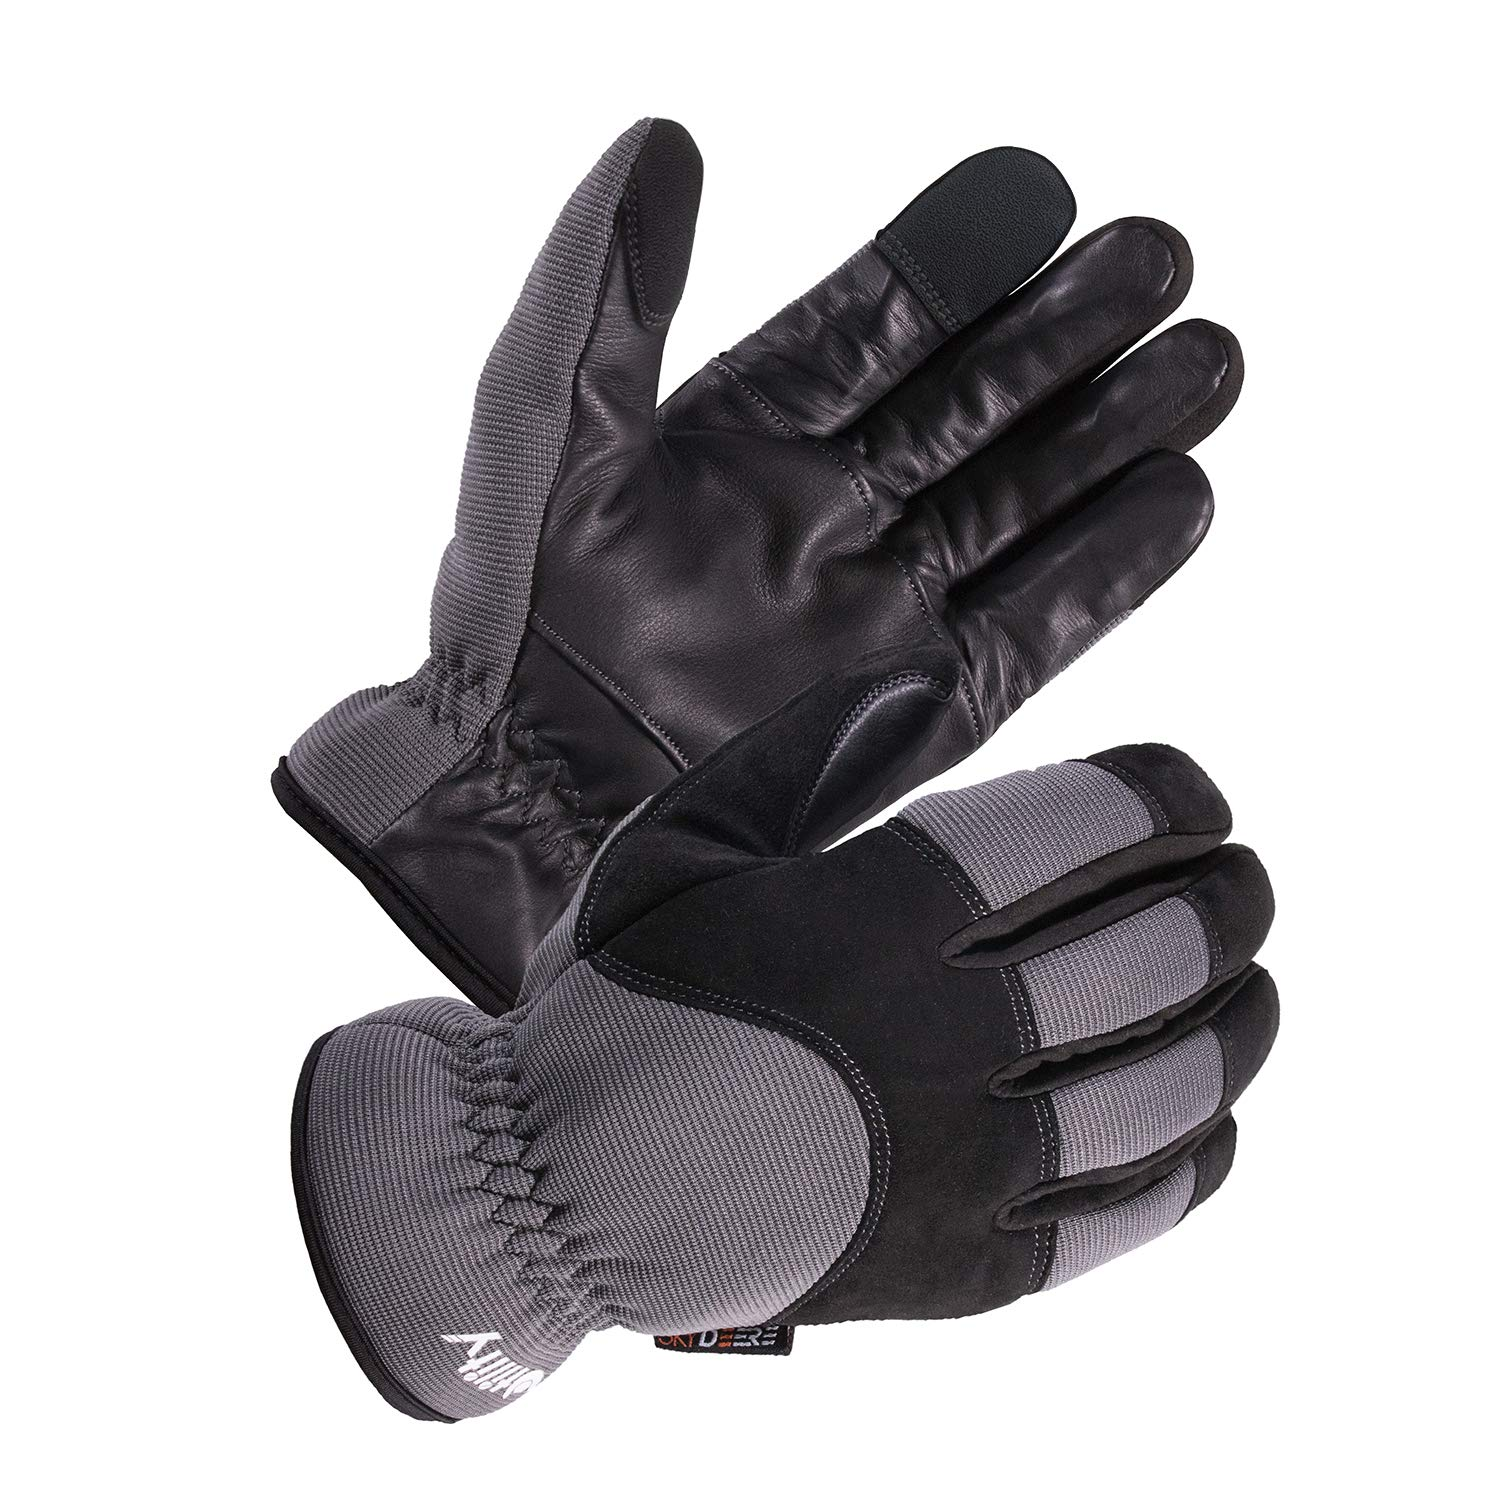 SKYDEER Genuine Leather Winter Hybrid Touch Screen Work Gloves with Fleece Insulation (SD2240T/L) SKYDEER CO.